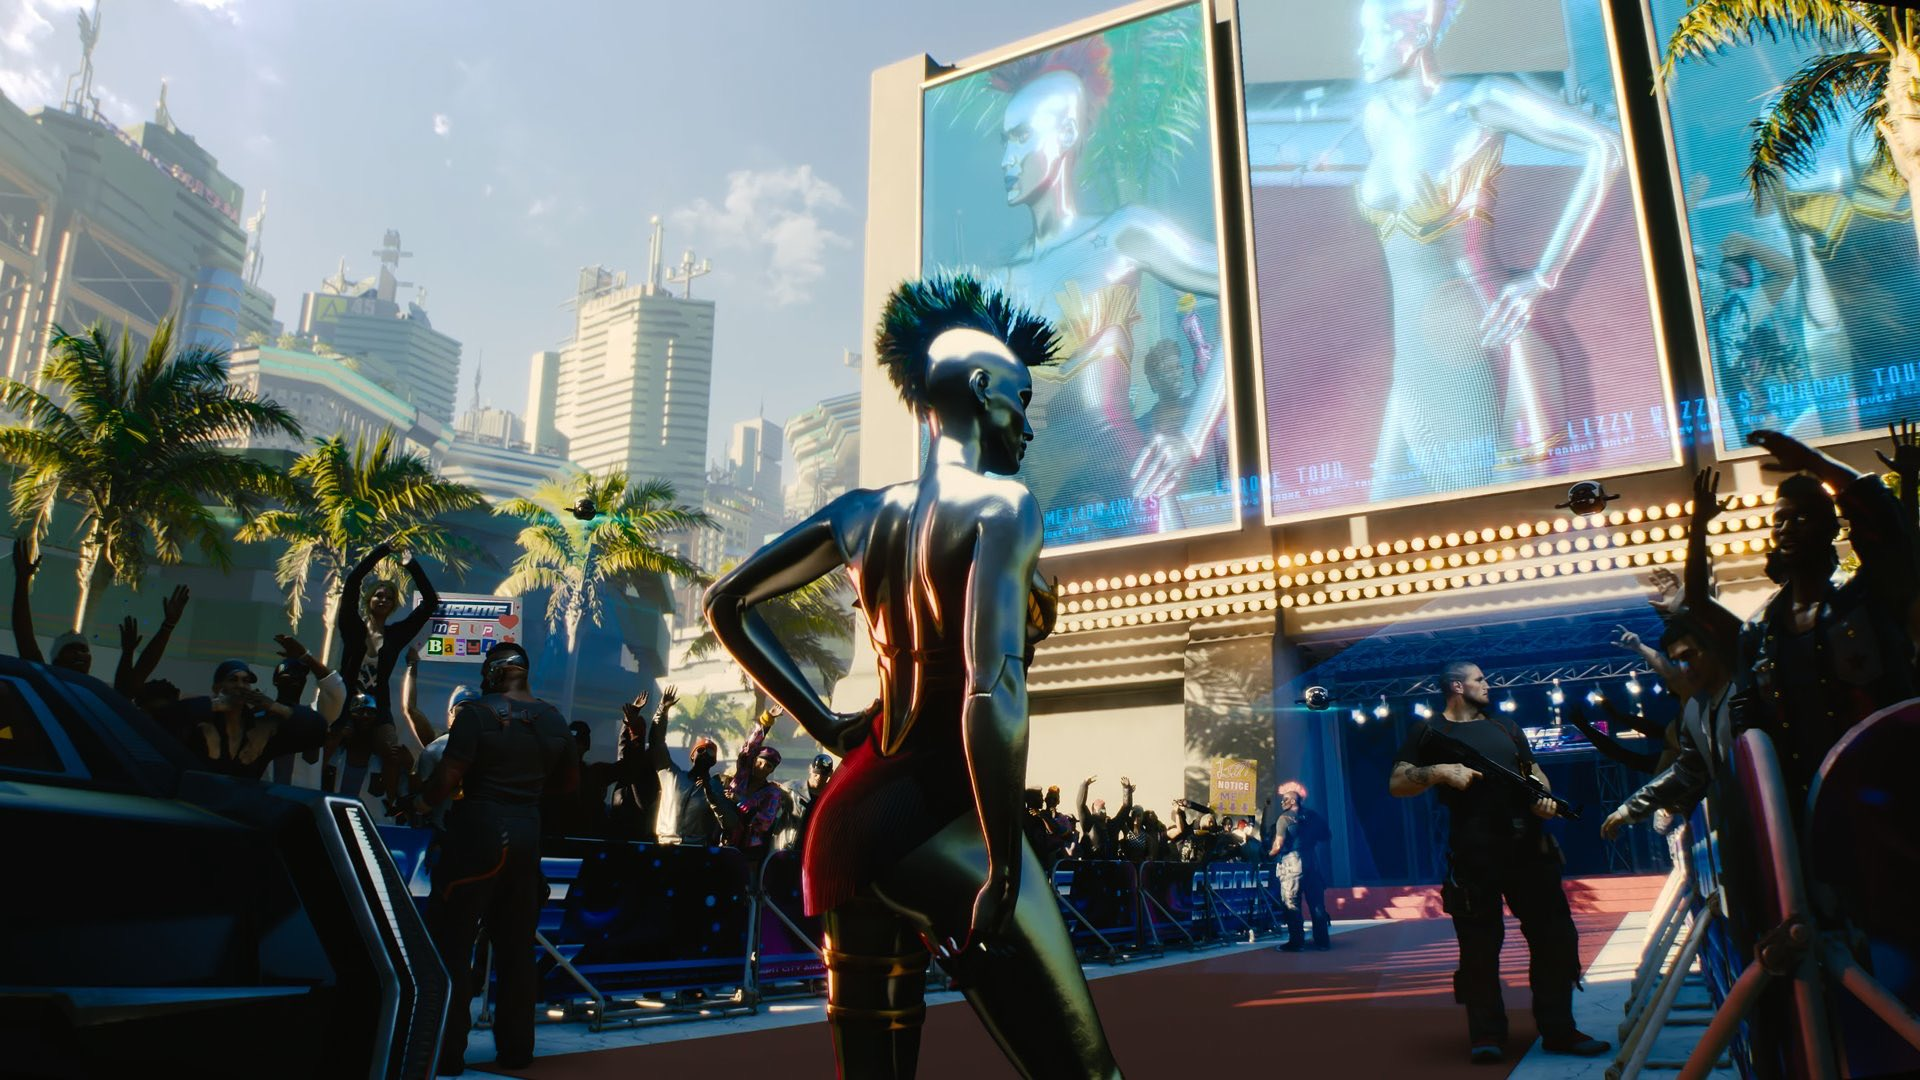 Lizzy Wizzy shown in Cyberpunk 2077. Her body is entirely chromed out.